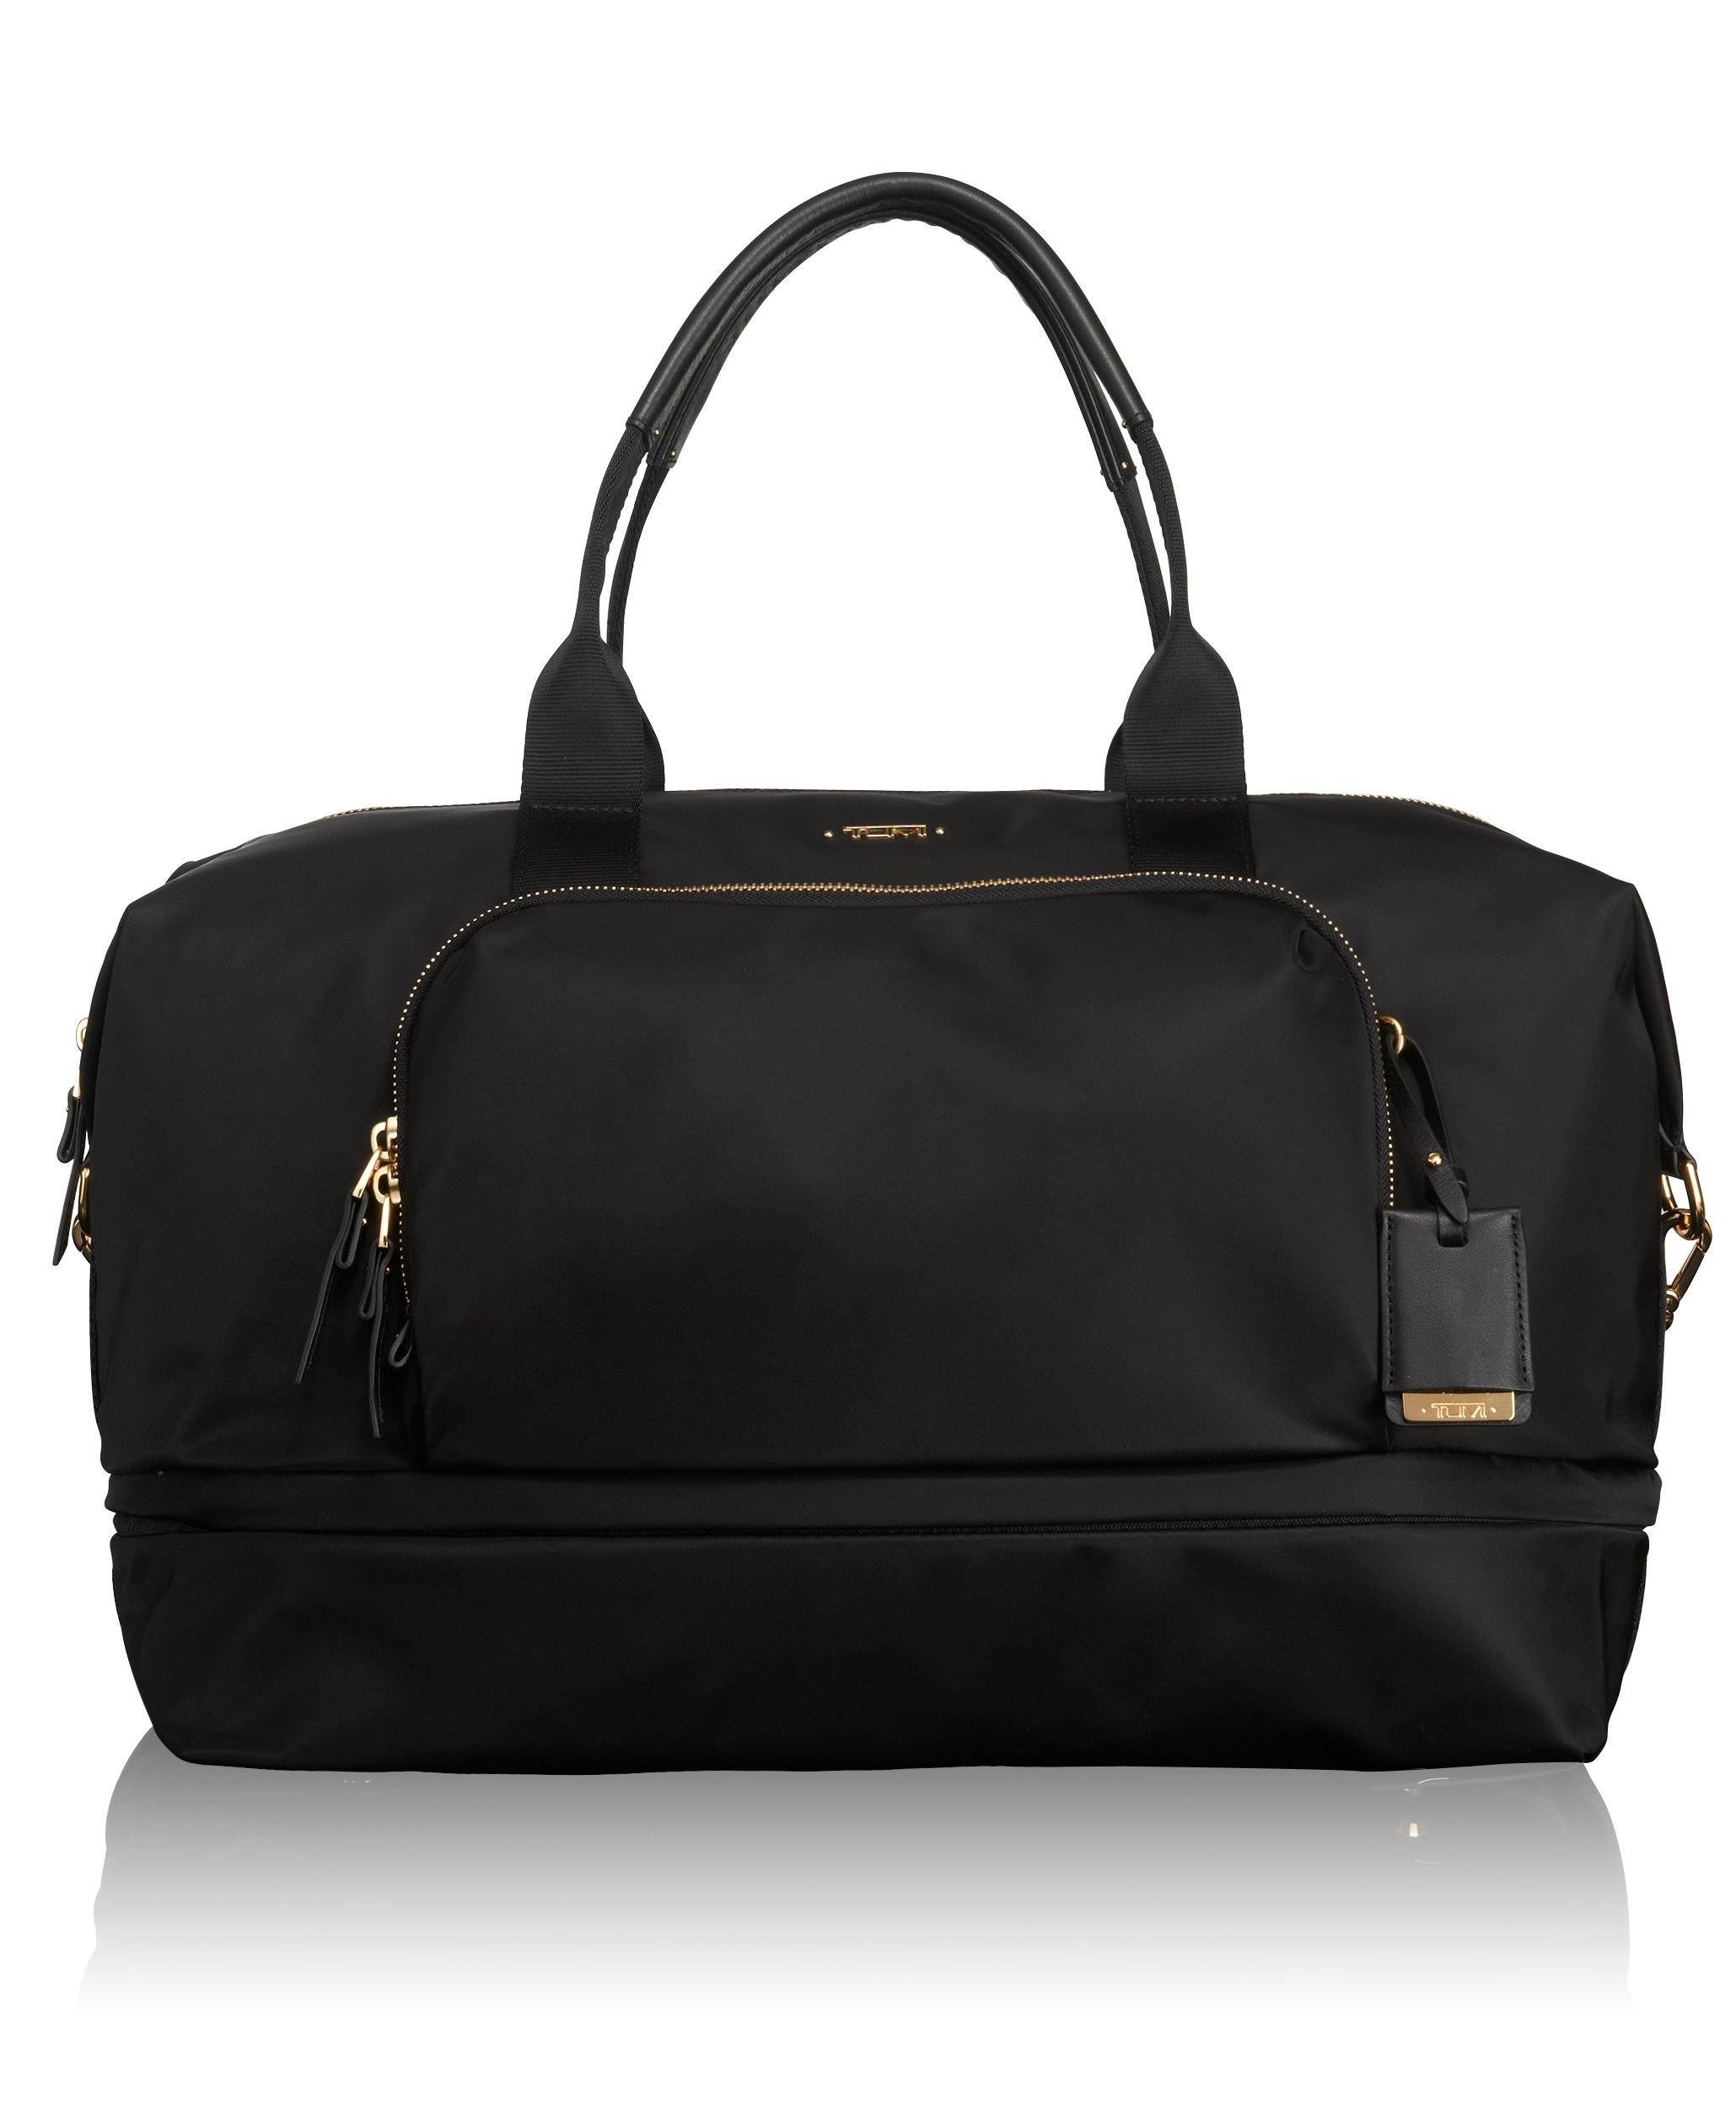 Tumi Voyageur Durban Expandable Duffel, Black, One Size by Tumi